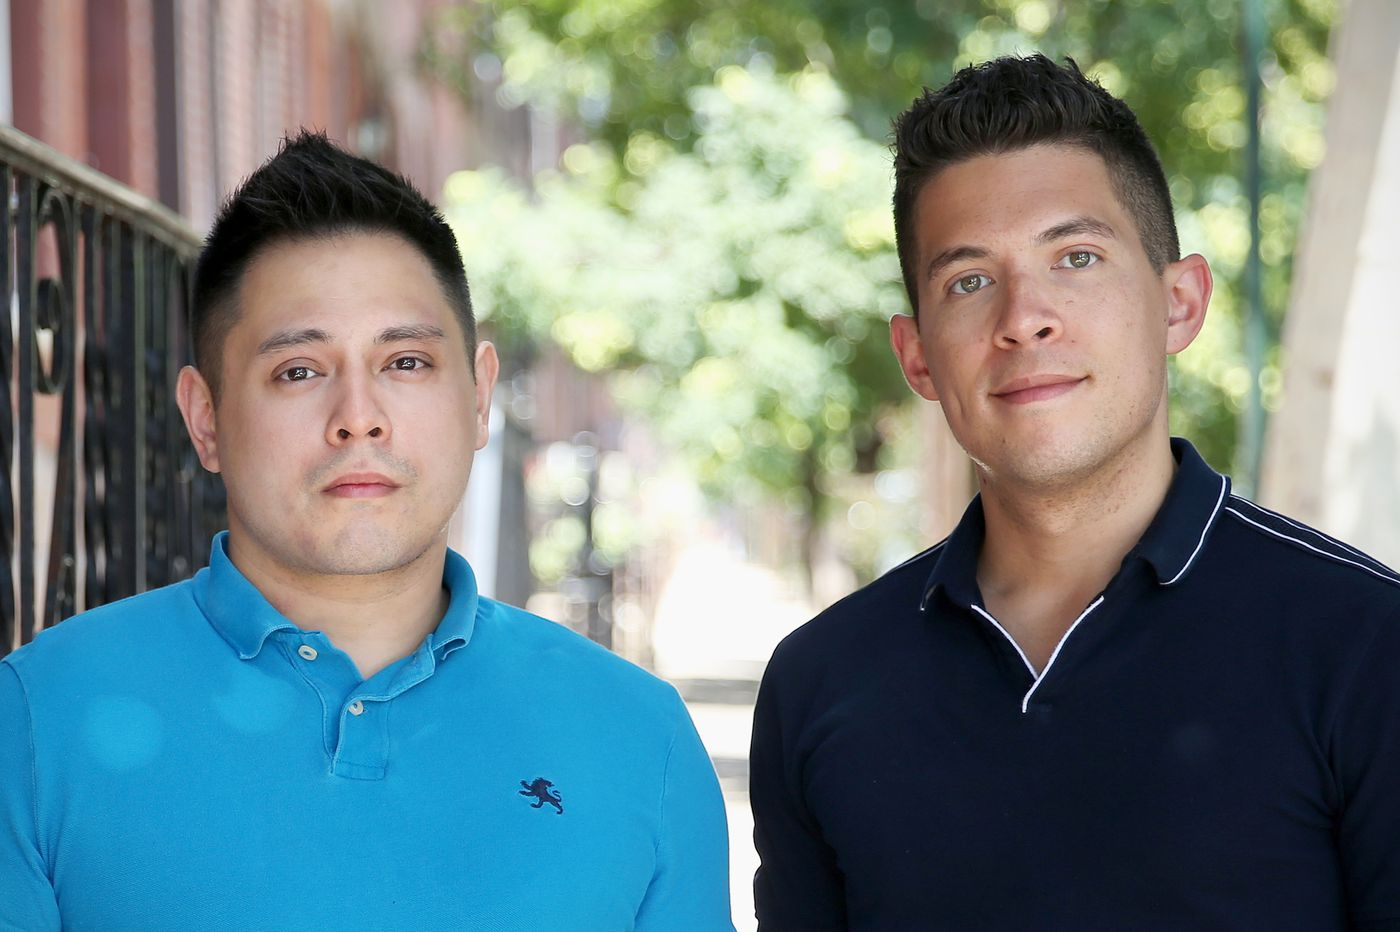 Two friends were kicked out of a cab for being gay. Here's how the PPA served up justice. | Ronnie Polaneczky